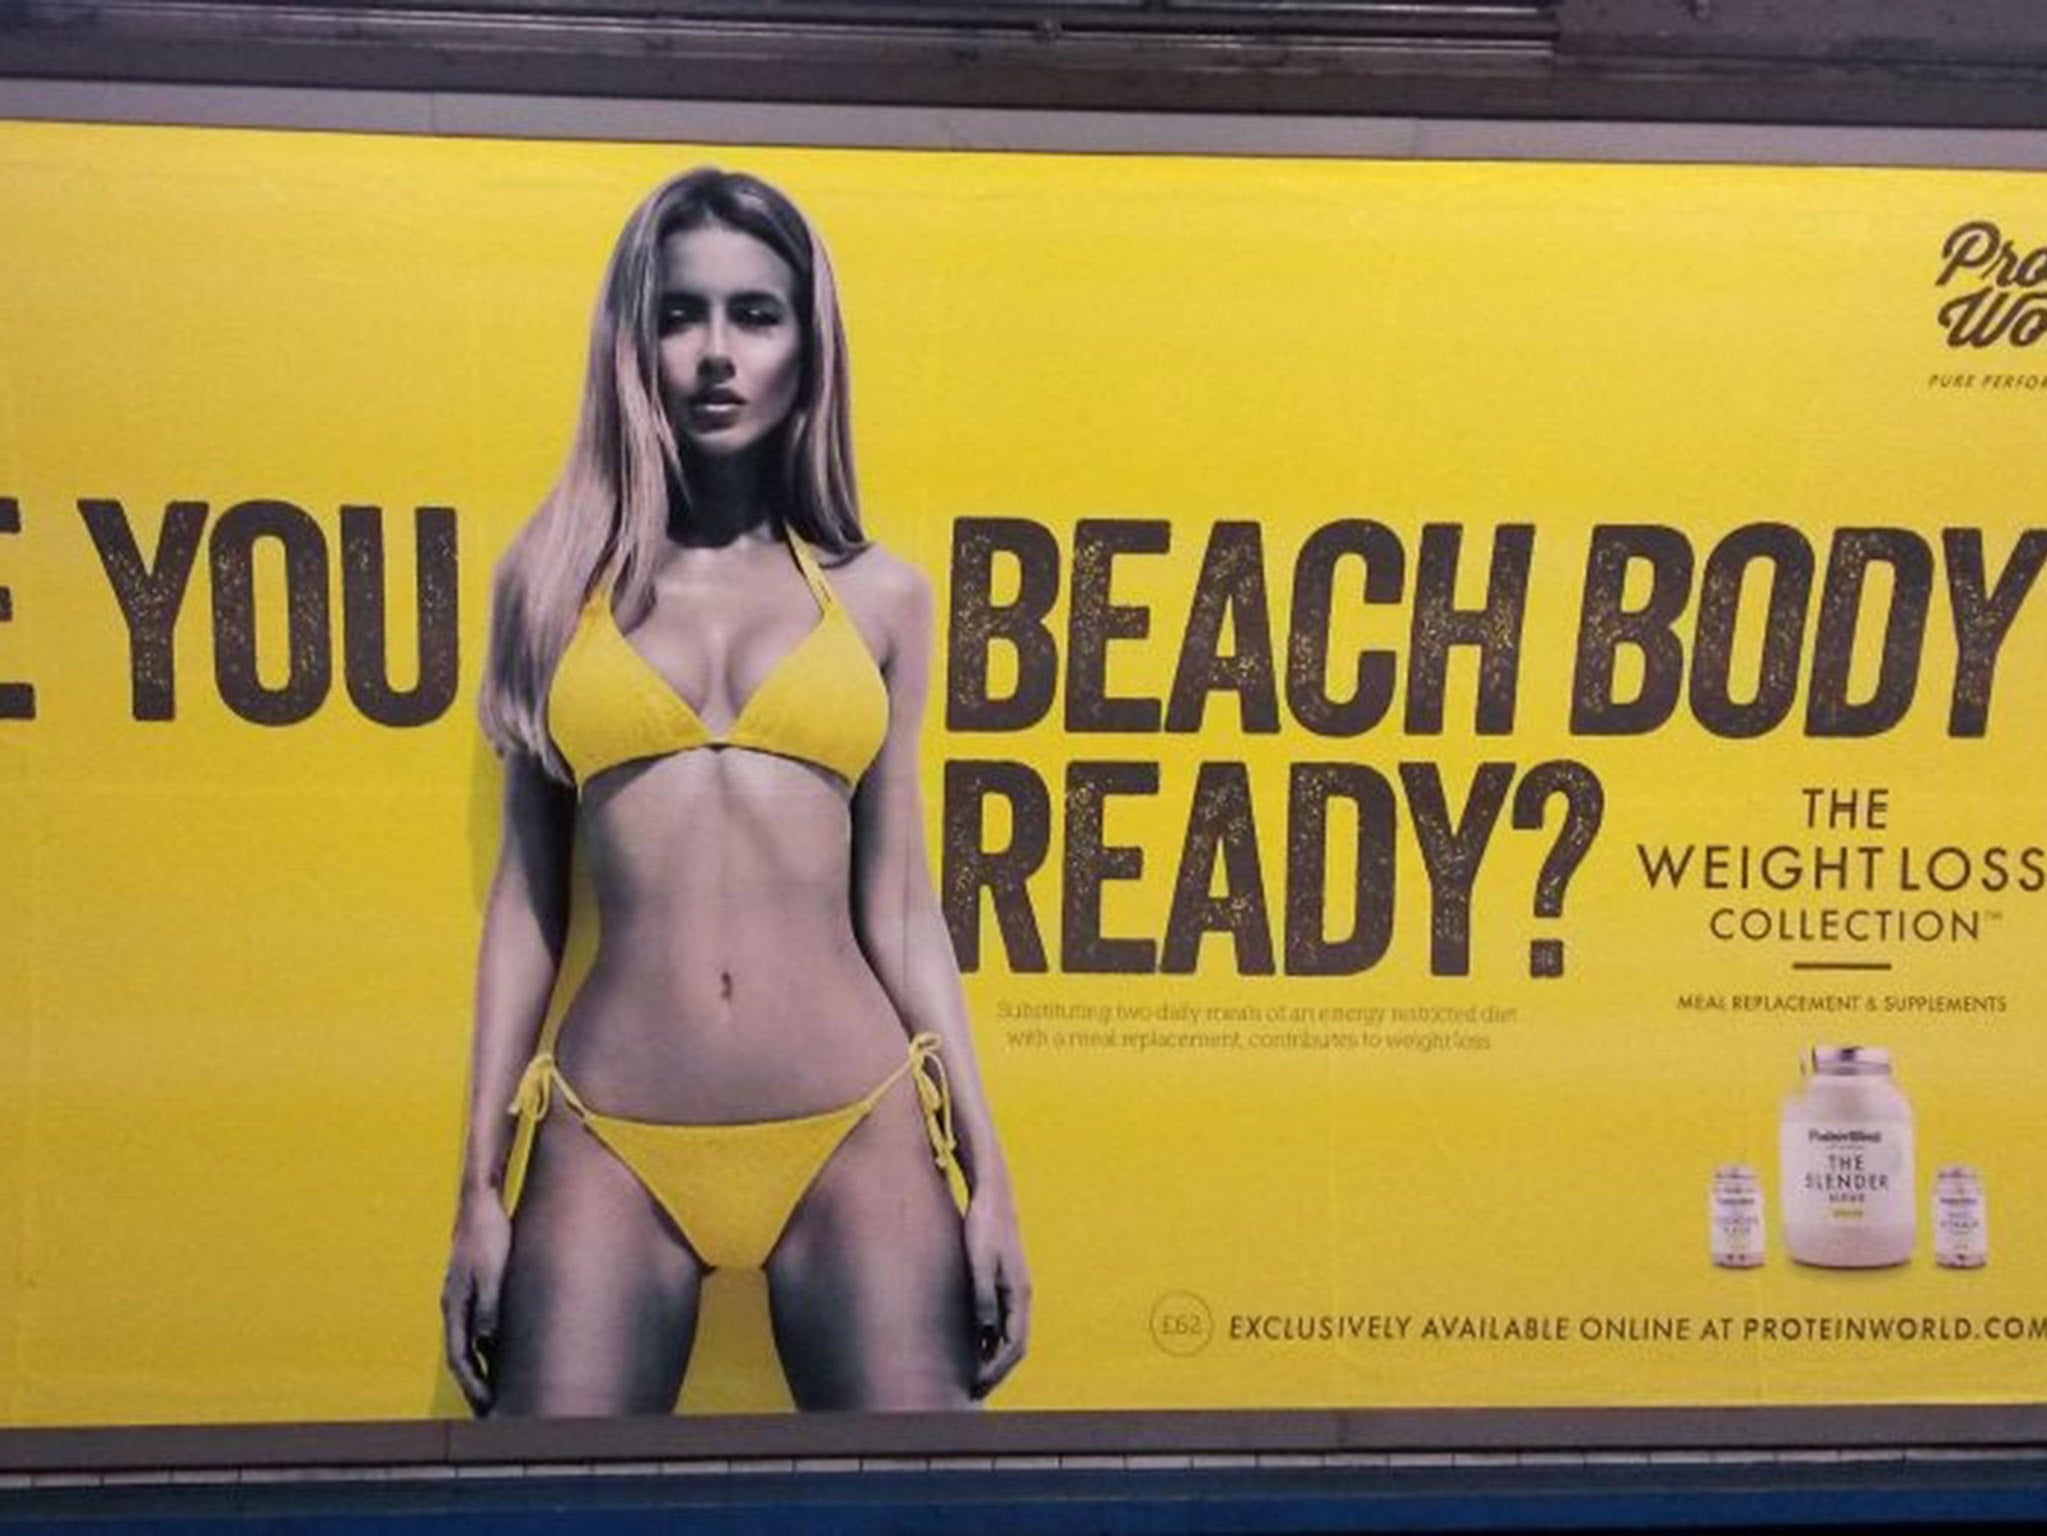 Body-shaming adverts to be banned on London transport by Sadiq Khan